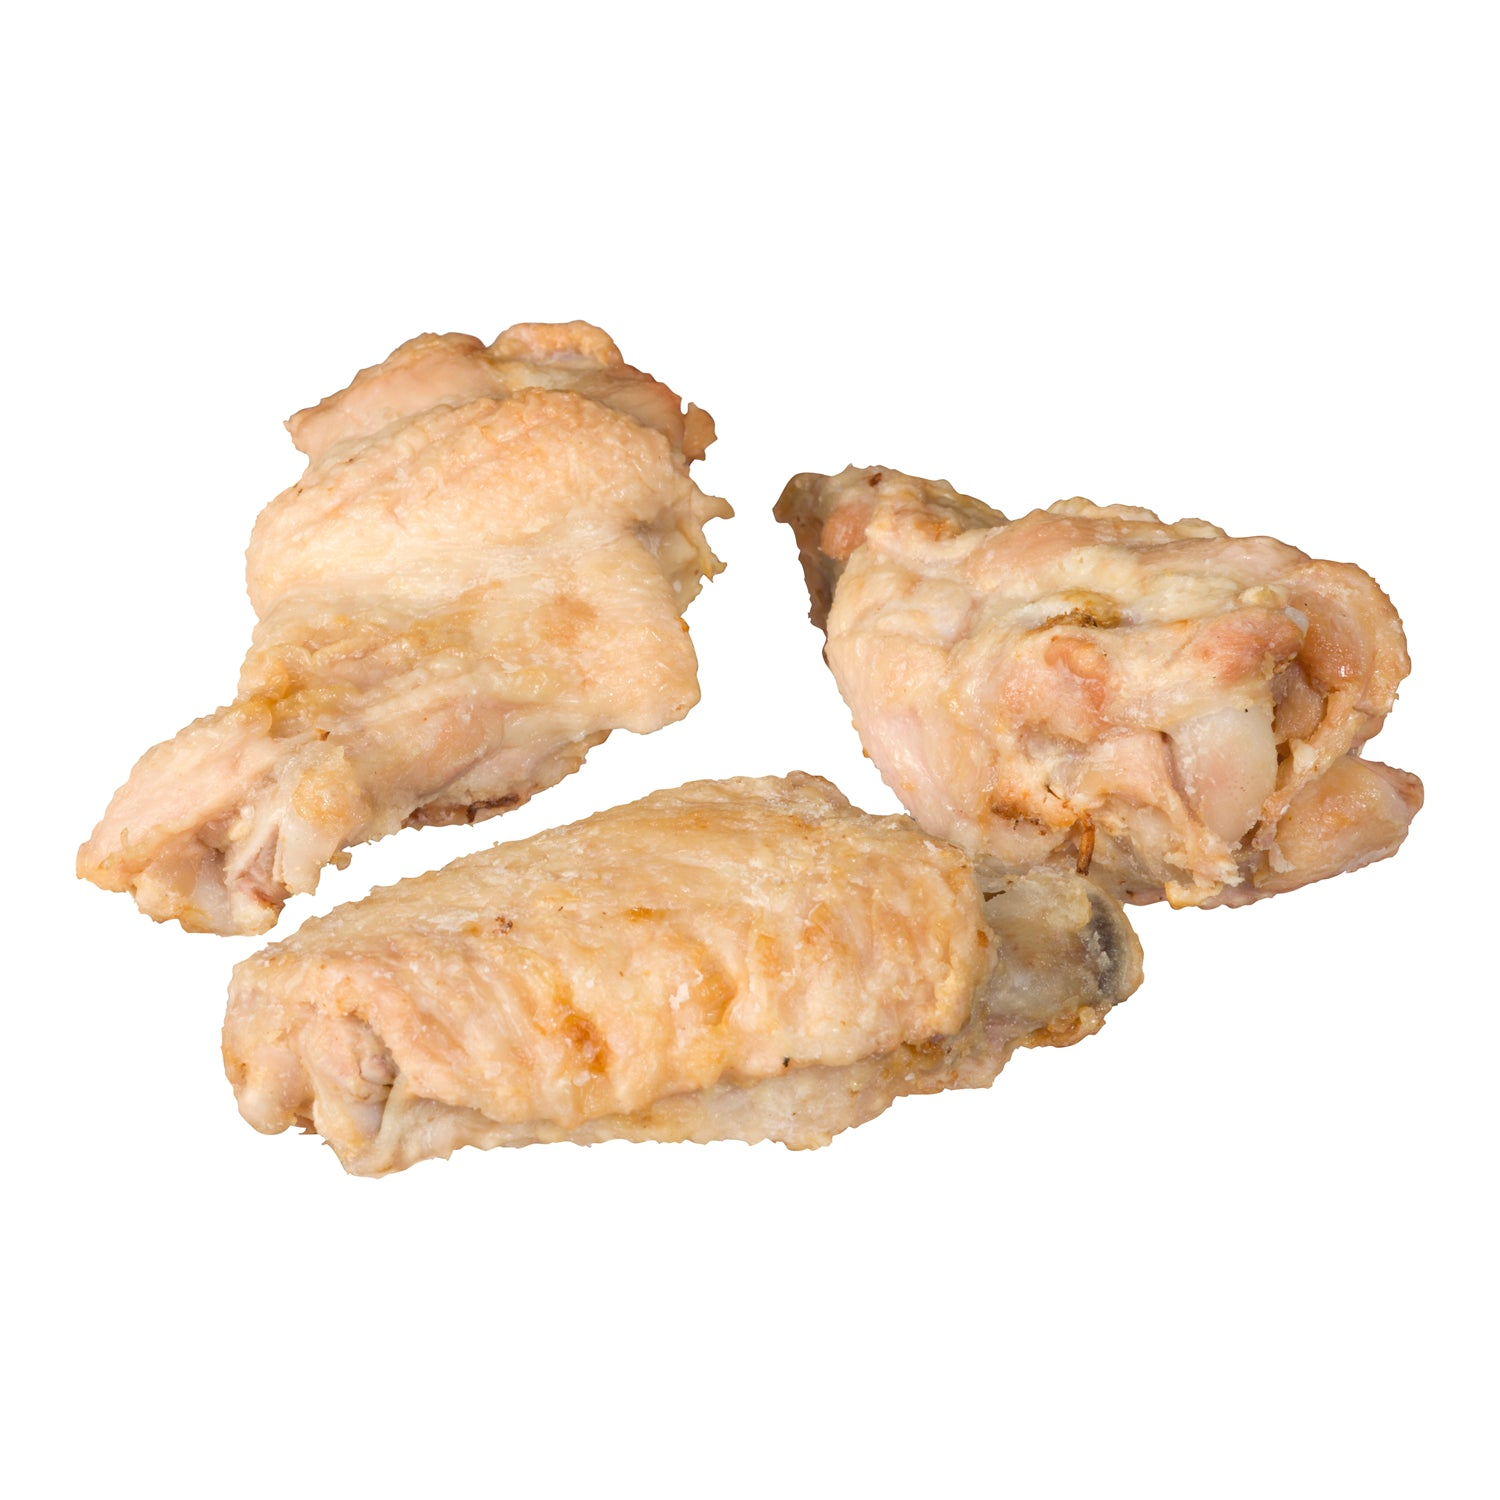 Sysco Classic Frozen Fully Cooked Chicken Wings 2 kg Fully Cooked - 2 Pack [$16.75/kg]